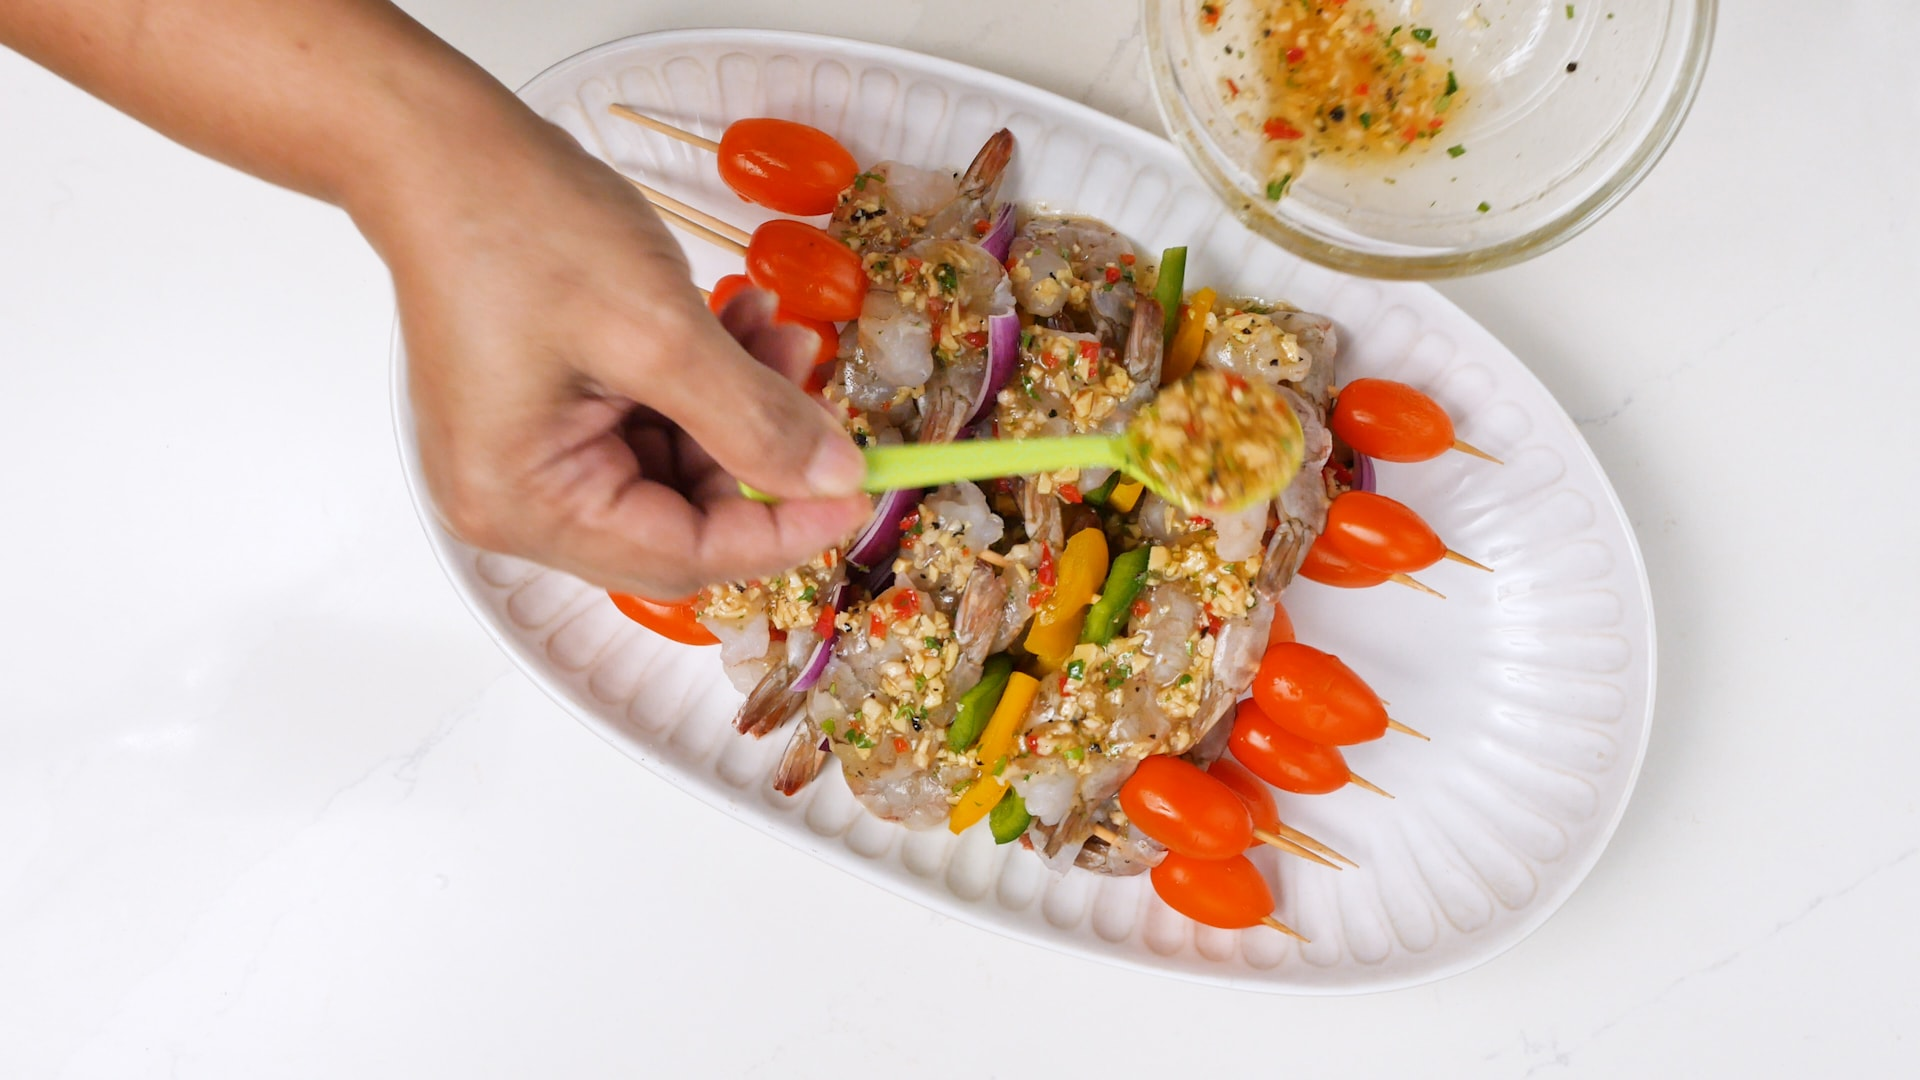 Bathing brochettes with marinade